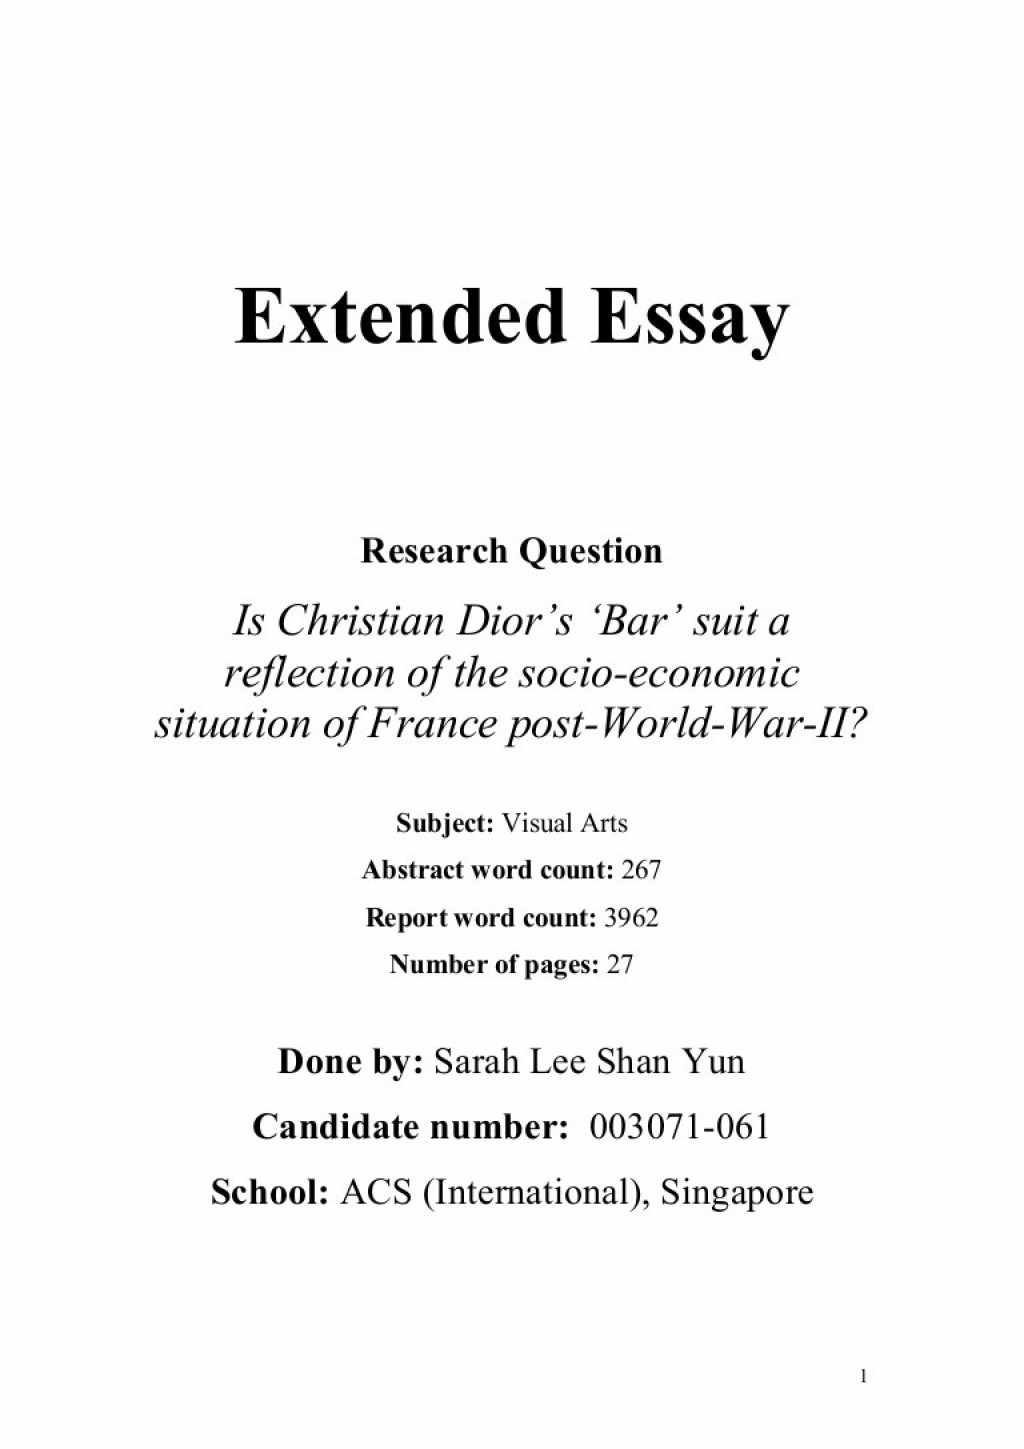 005 History Extended Essay Topics Extendedessay Phpapp01 Thumbnail 4resize7682c1087 Awesome Questions Ideas Ib Large